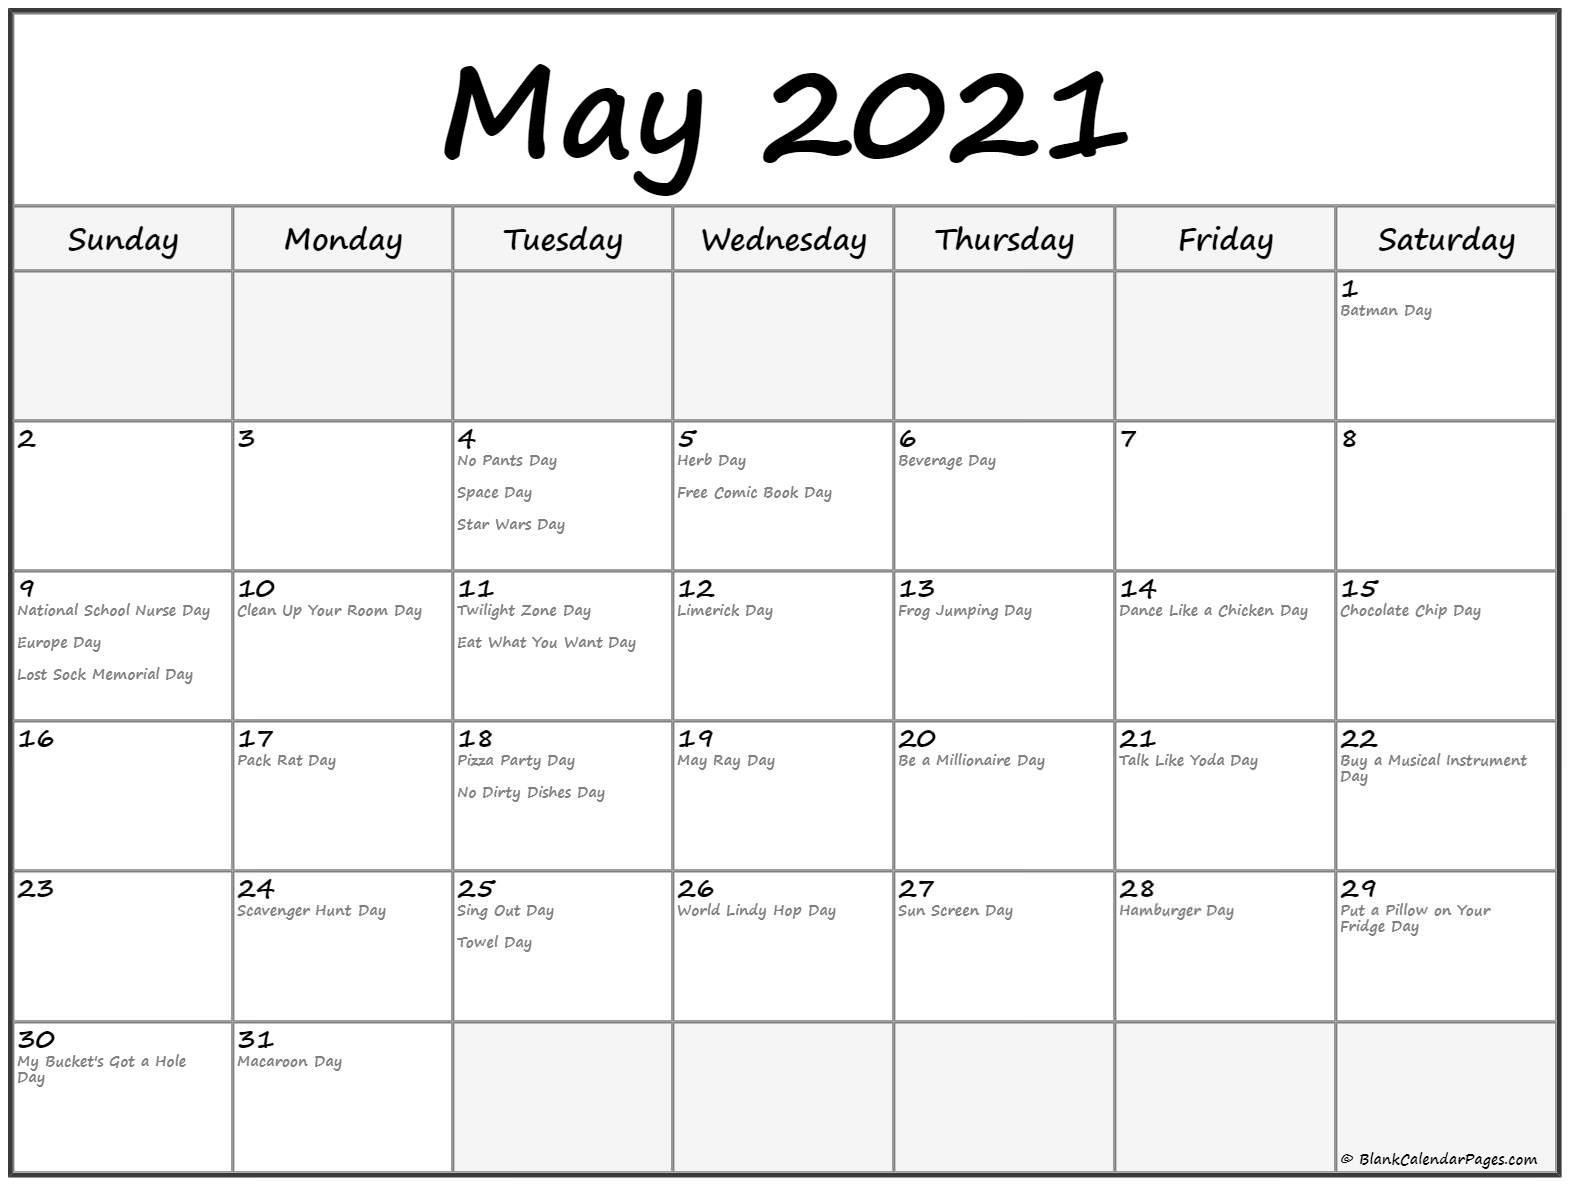 Collection Of May 2021 Calendars With Holidays-National Wellness Calendar 2021